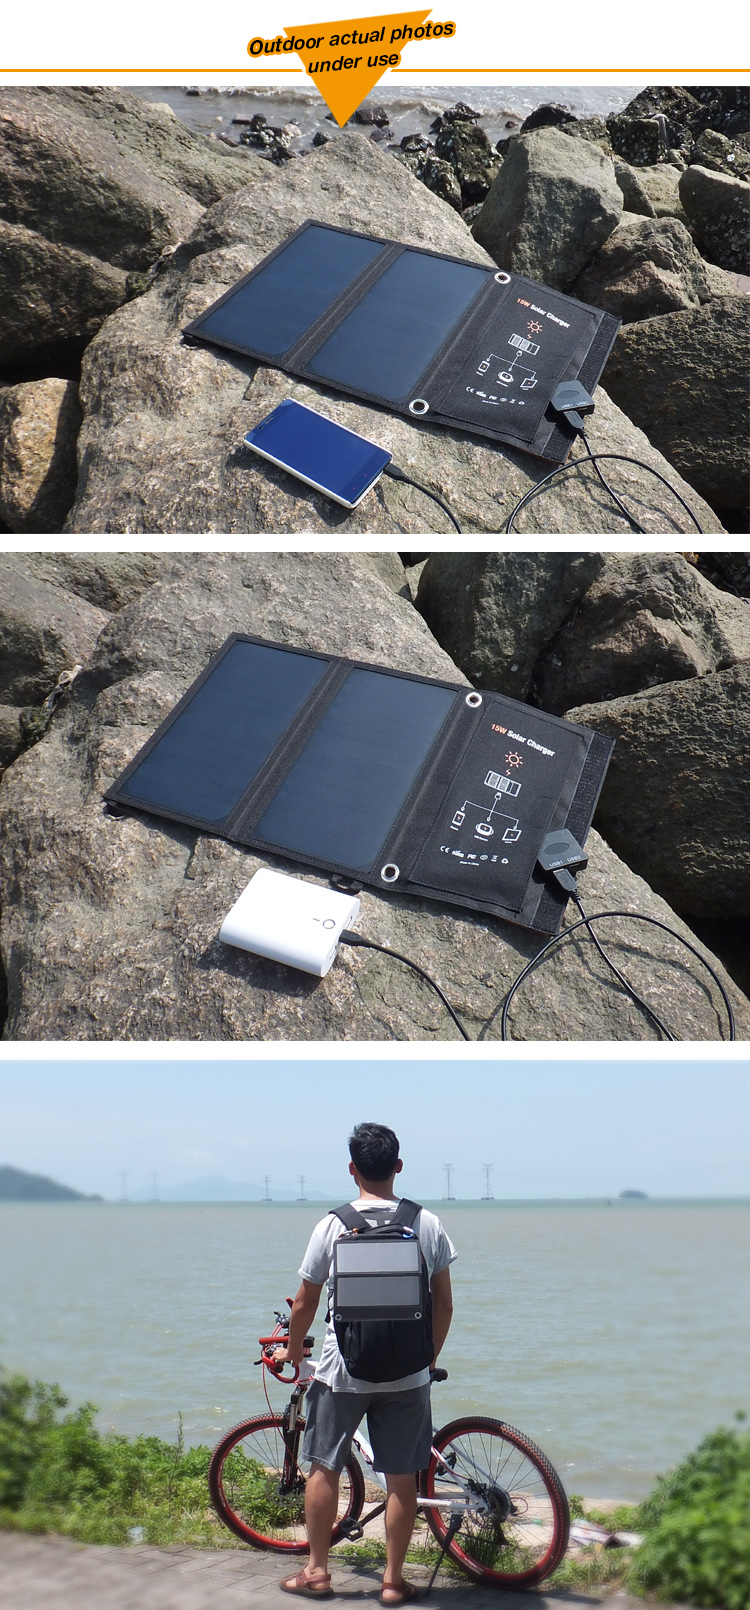 New Products Abs Ce Thunderbolt Magnum Telefon Suntastic Solar Battery Charger Wiring Diagram Product Details